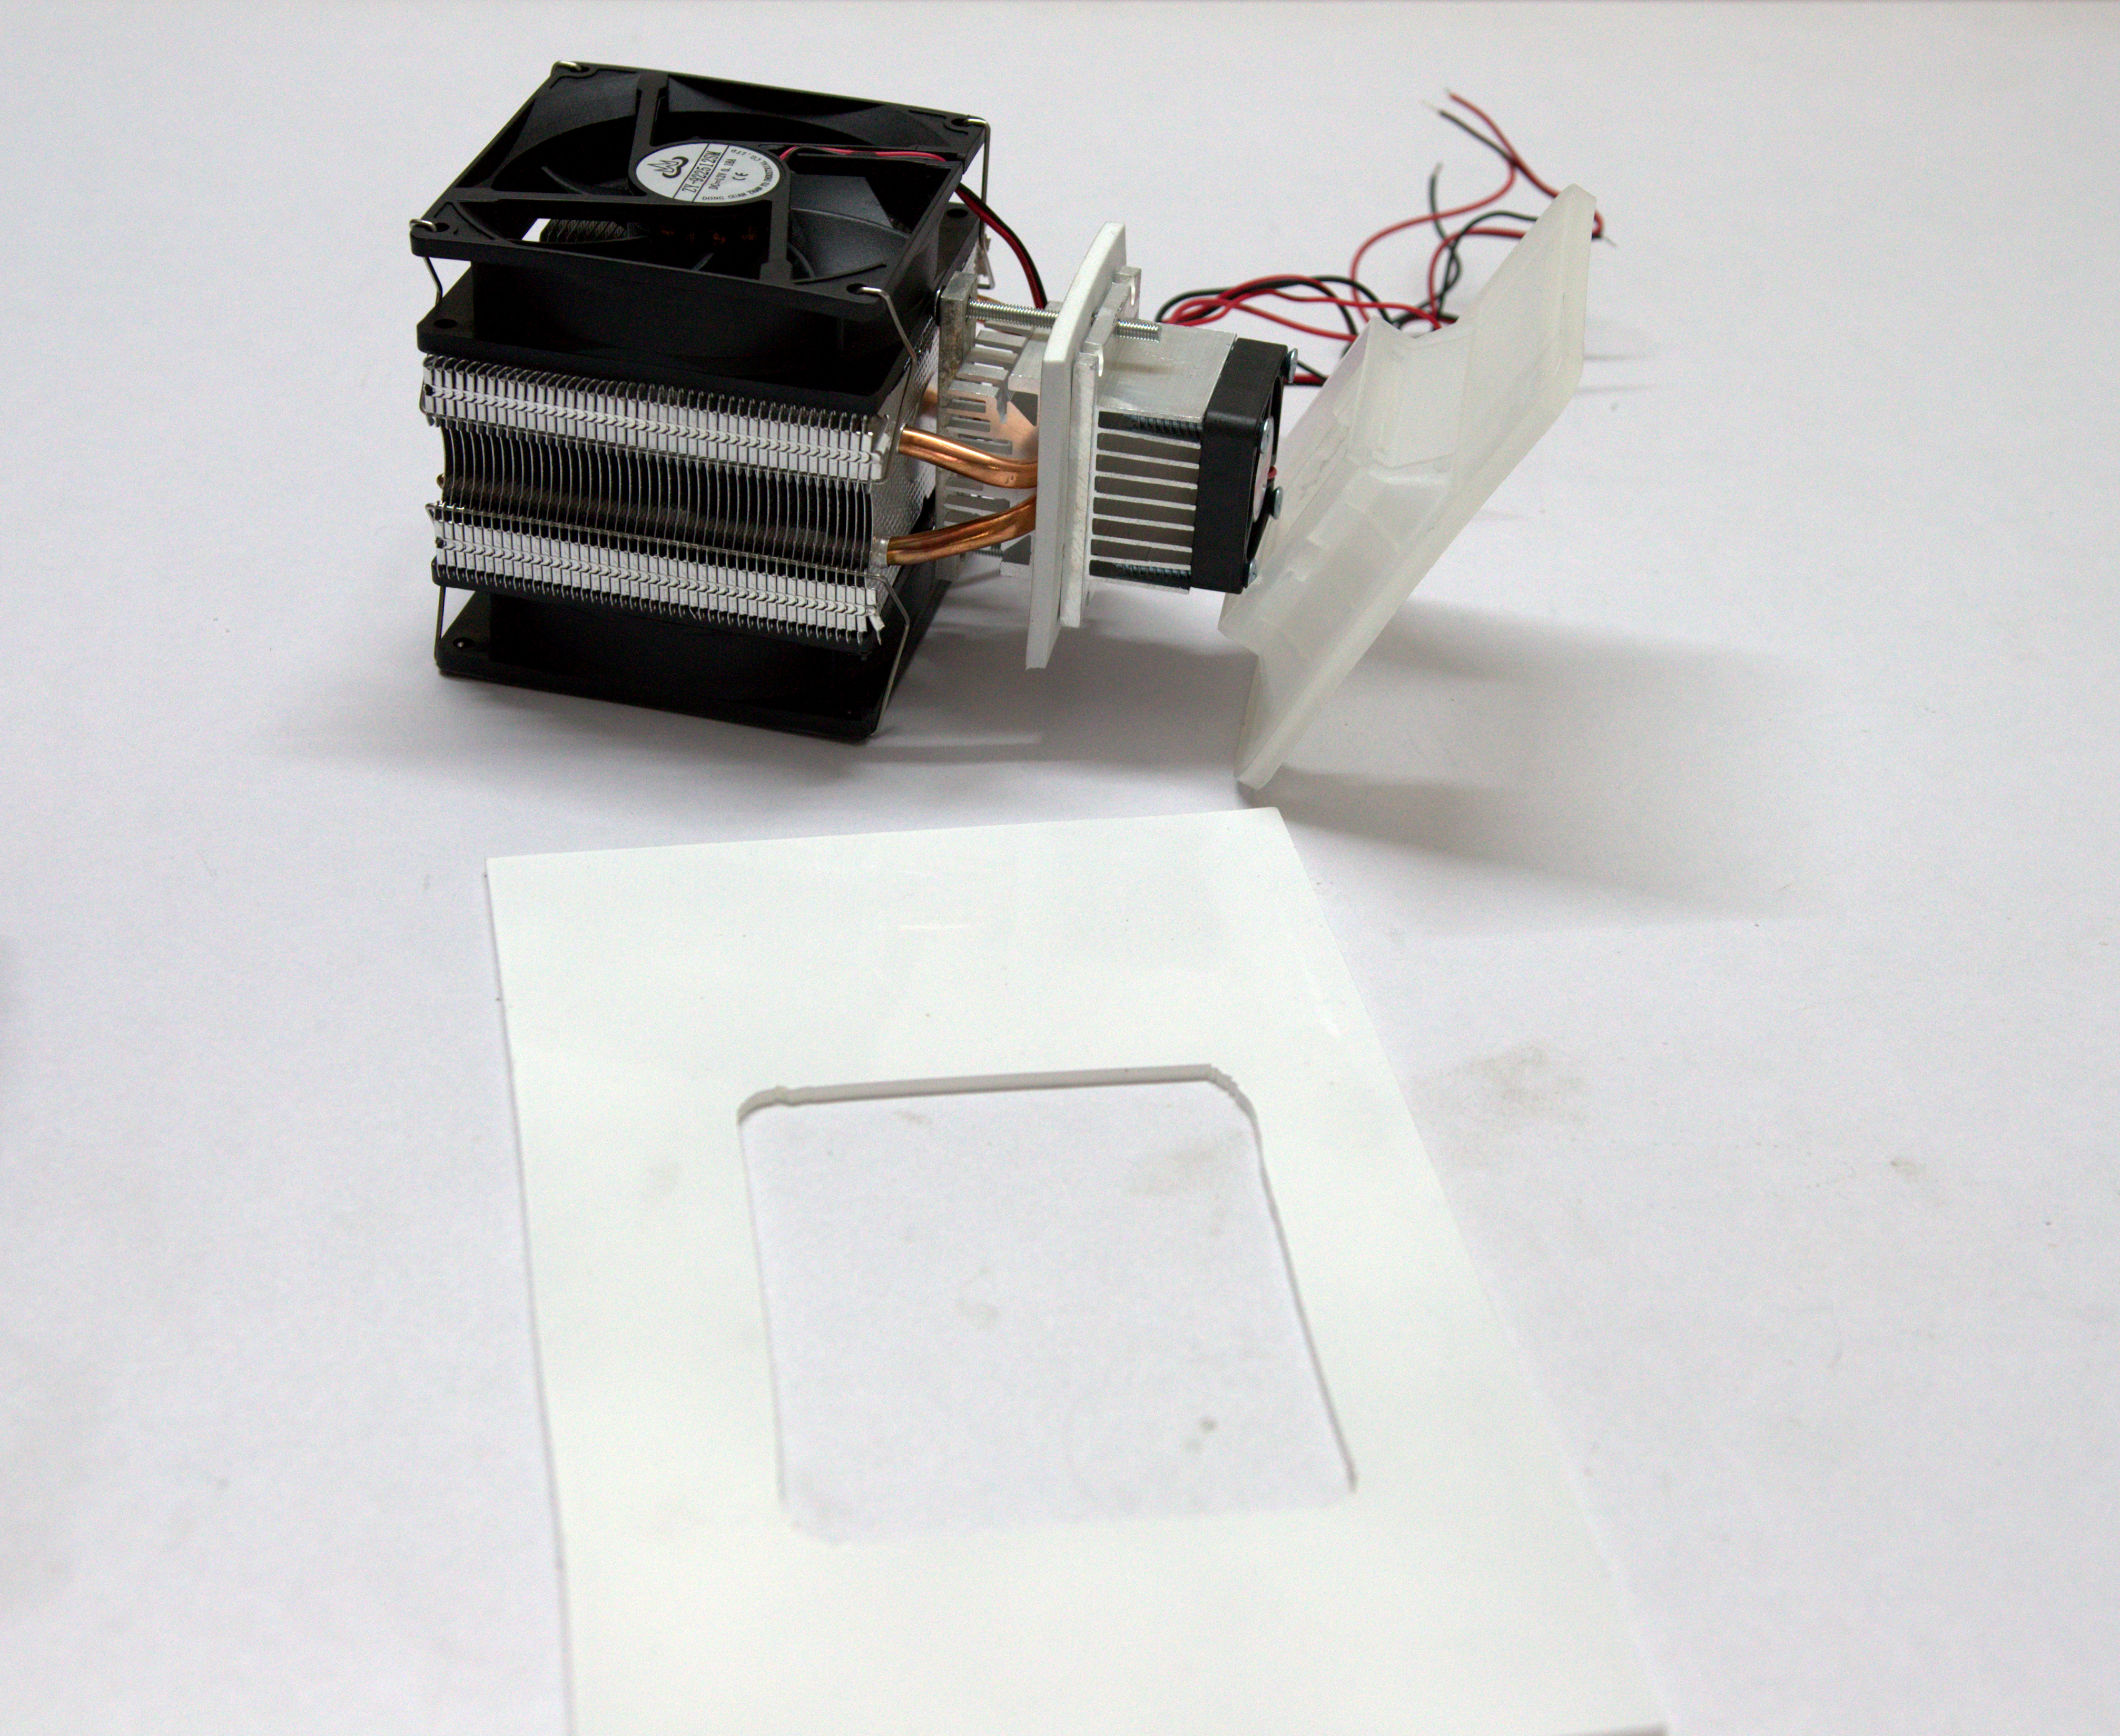 Picture of Glue the Cooler Unit